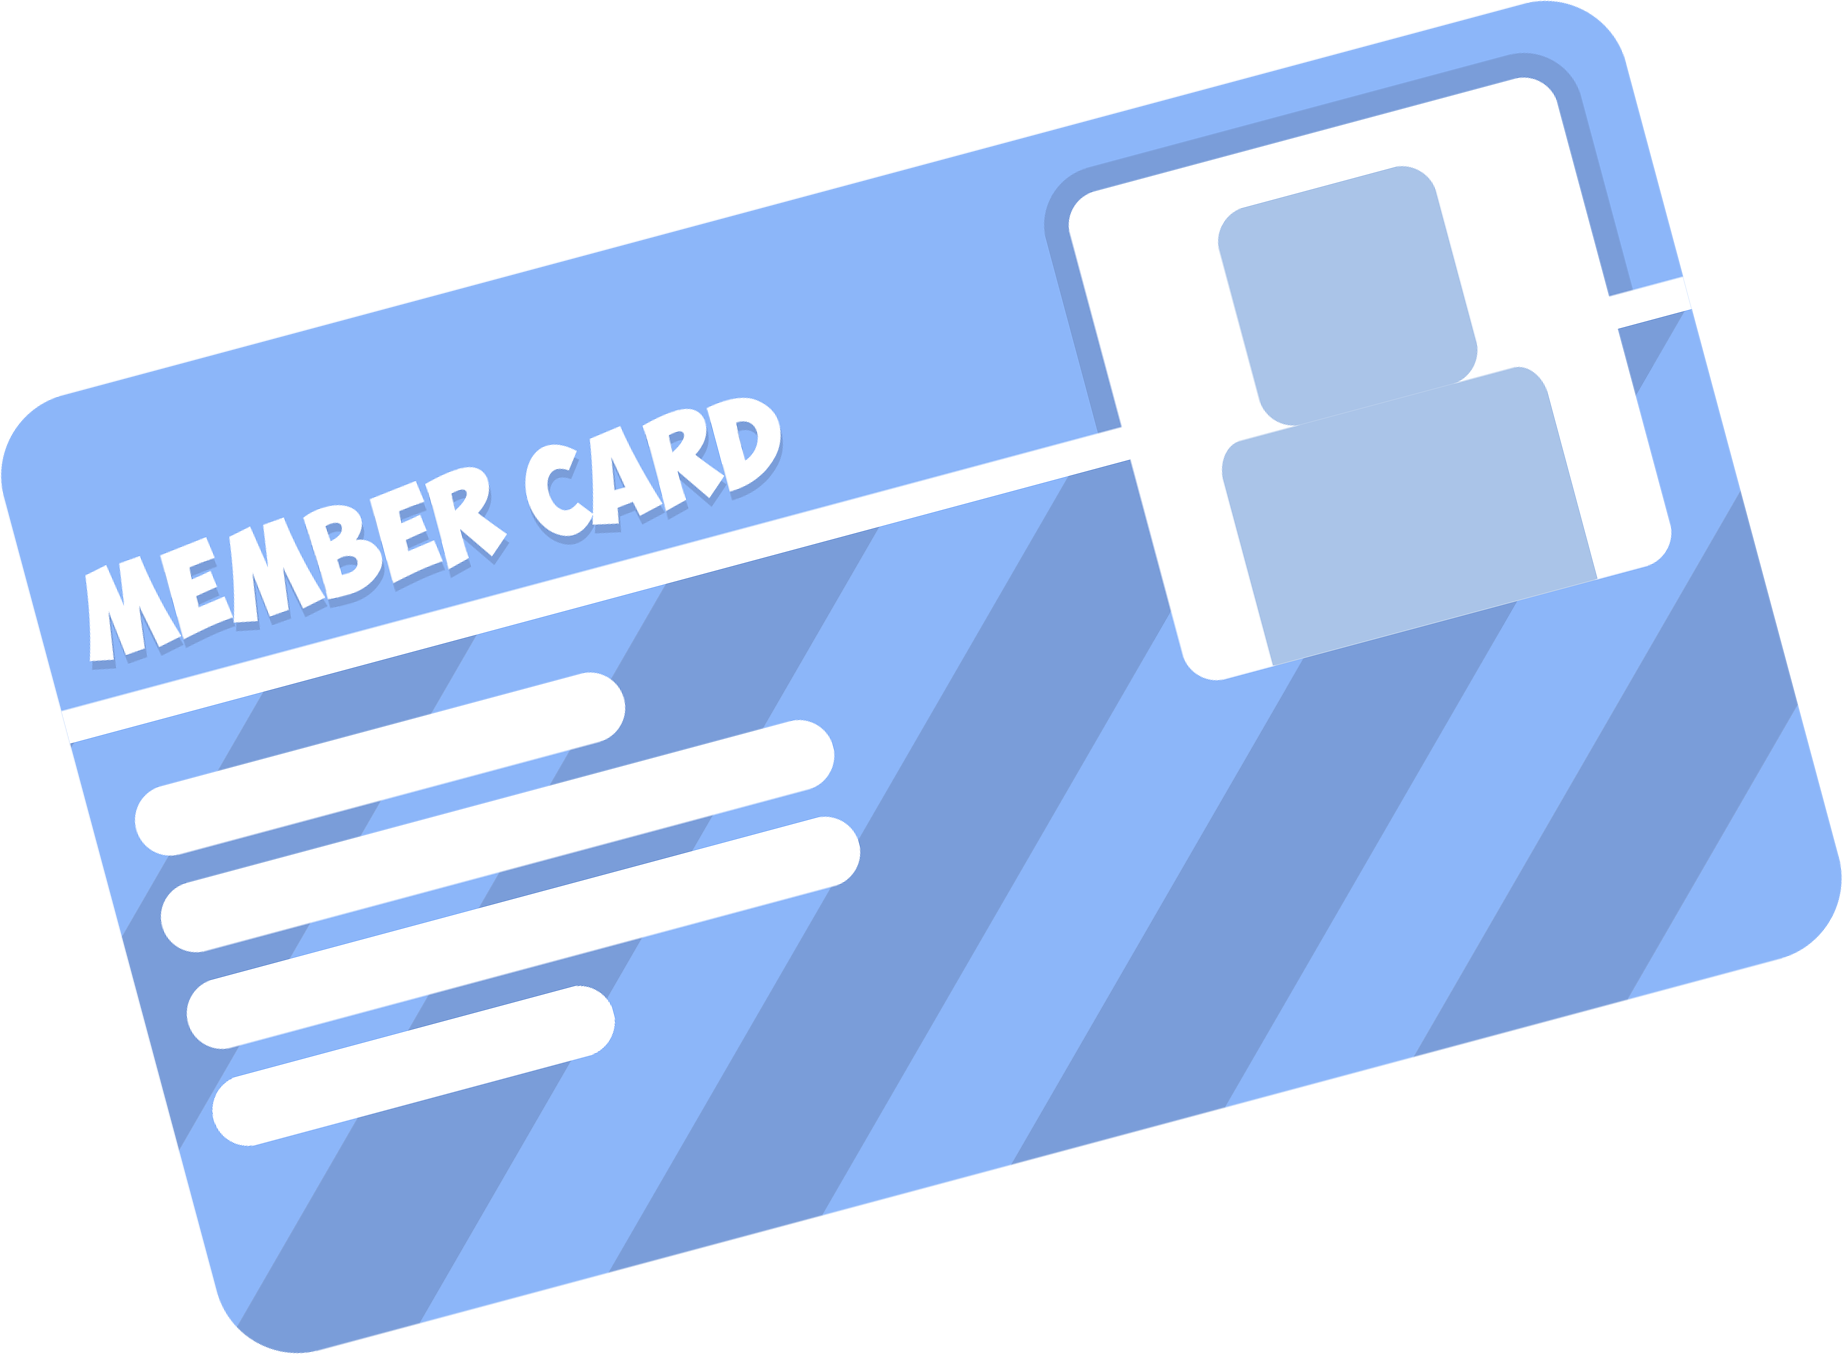 physical membership card